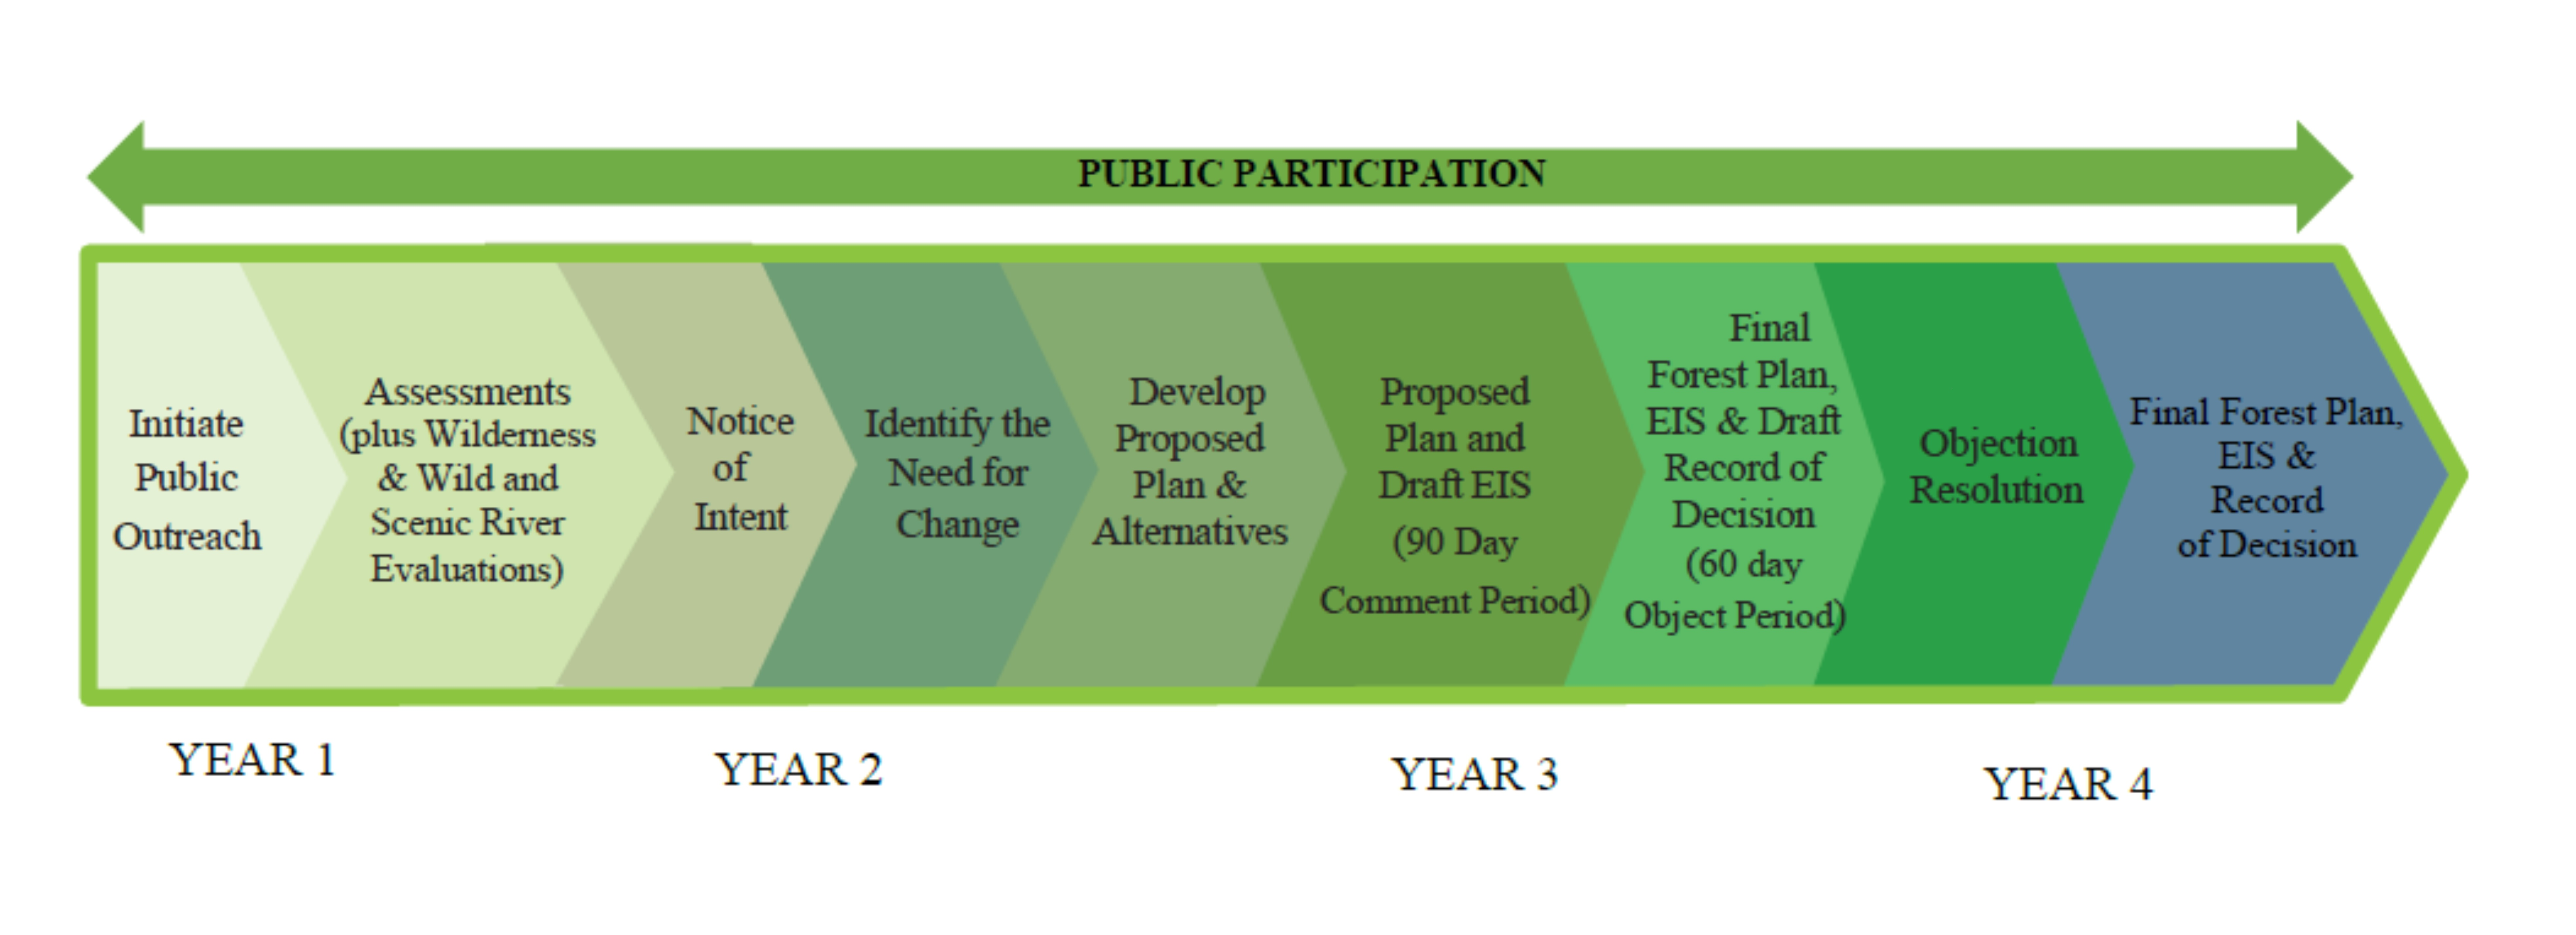 Flow chart showing the steps of public participation